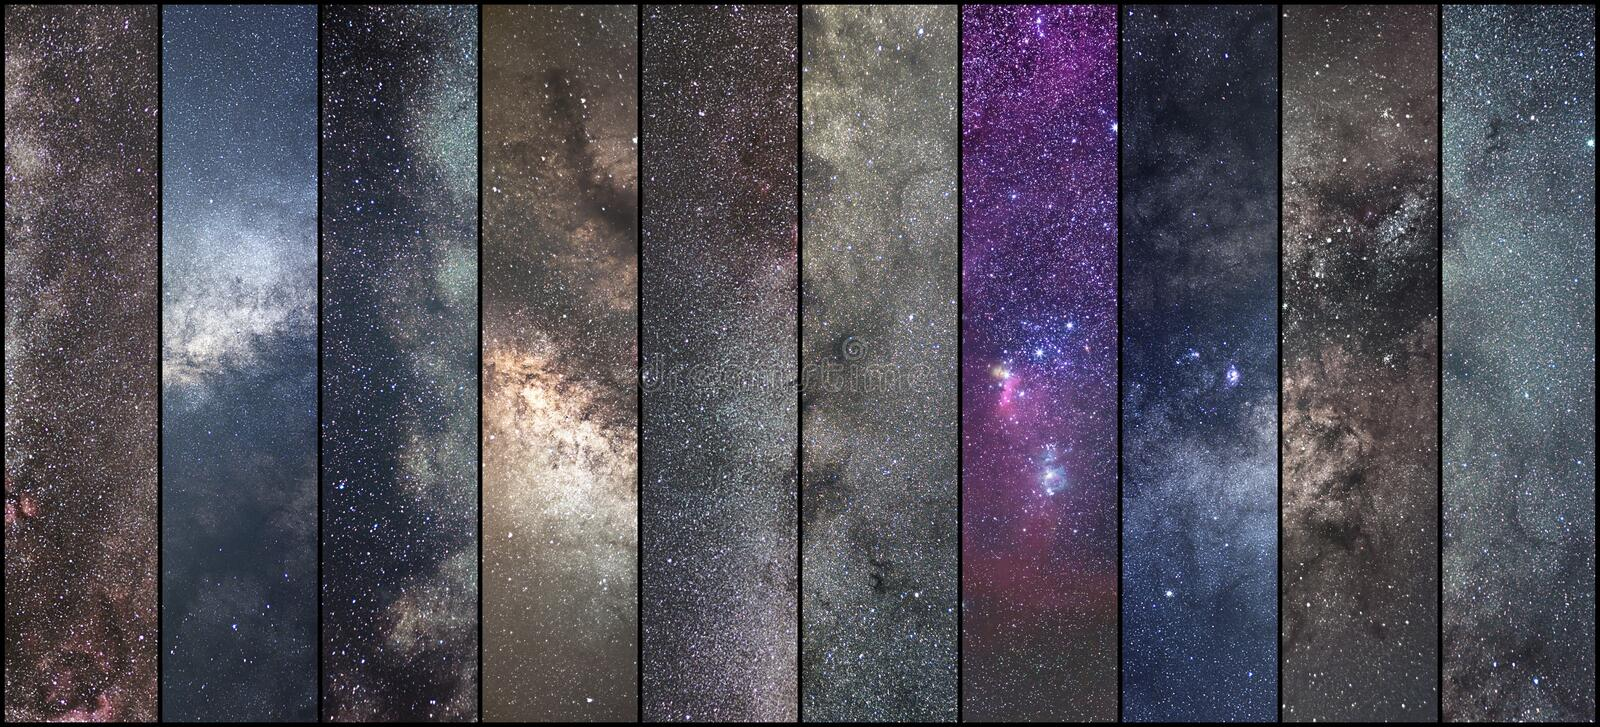 Space collage. Astronomy collage. Astrophotography collage. universe. NLong exposure photography stock image